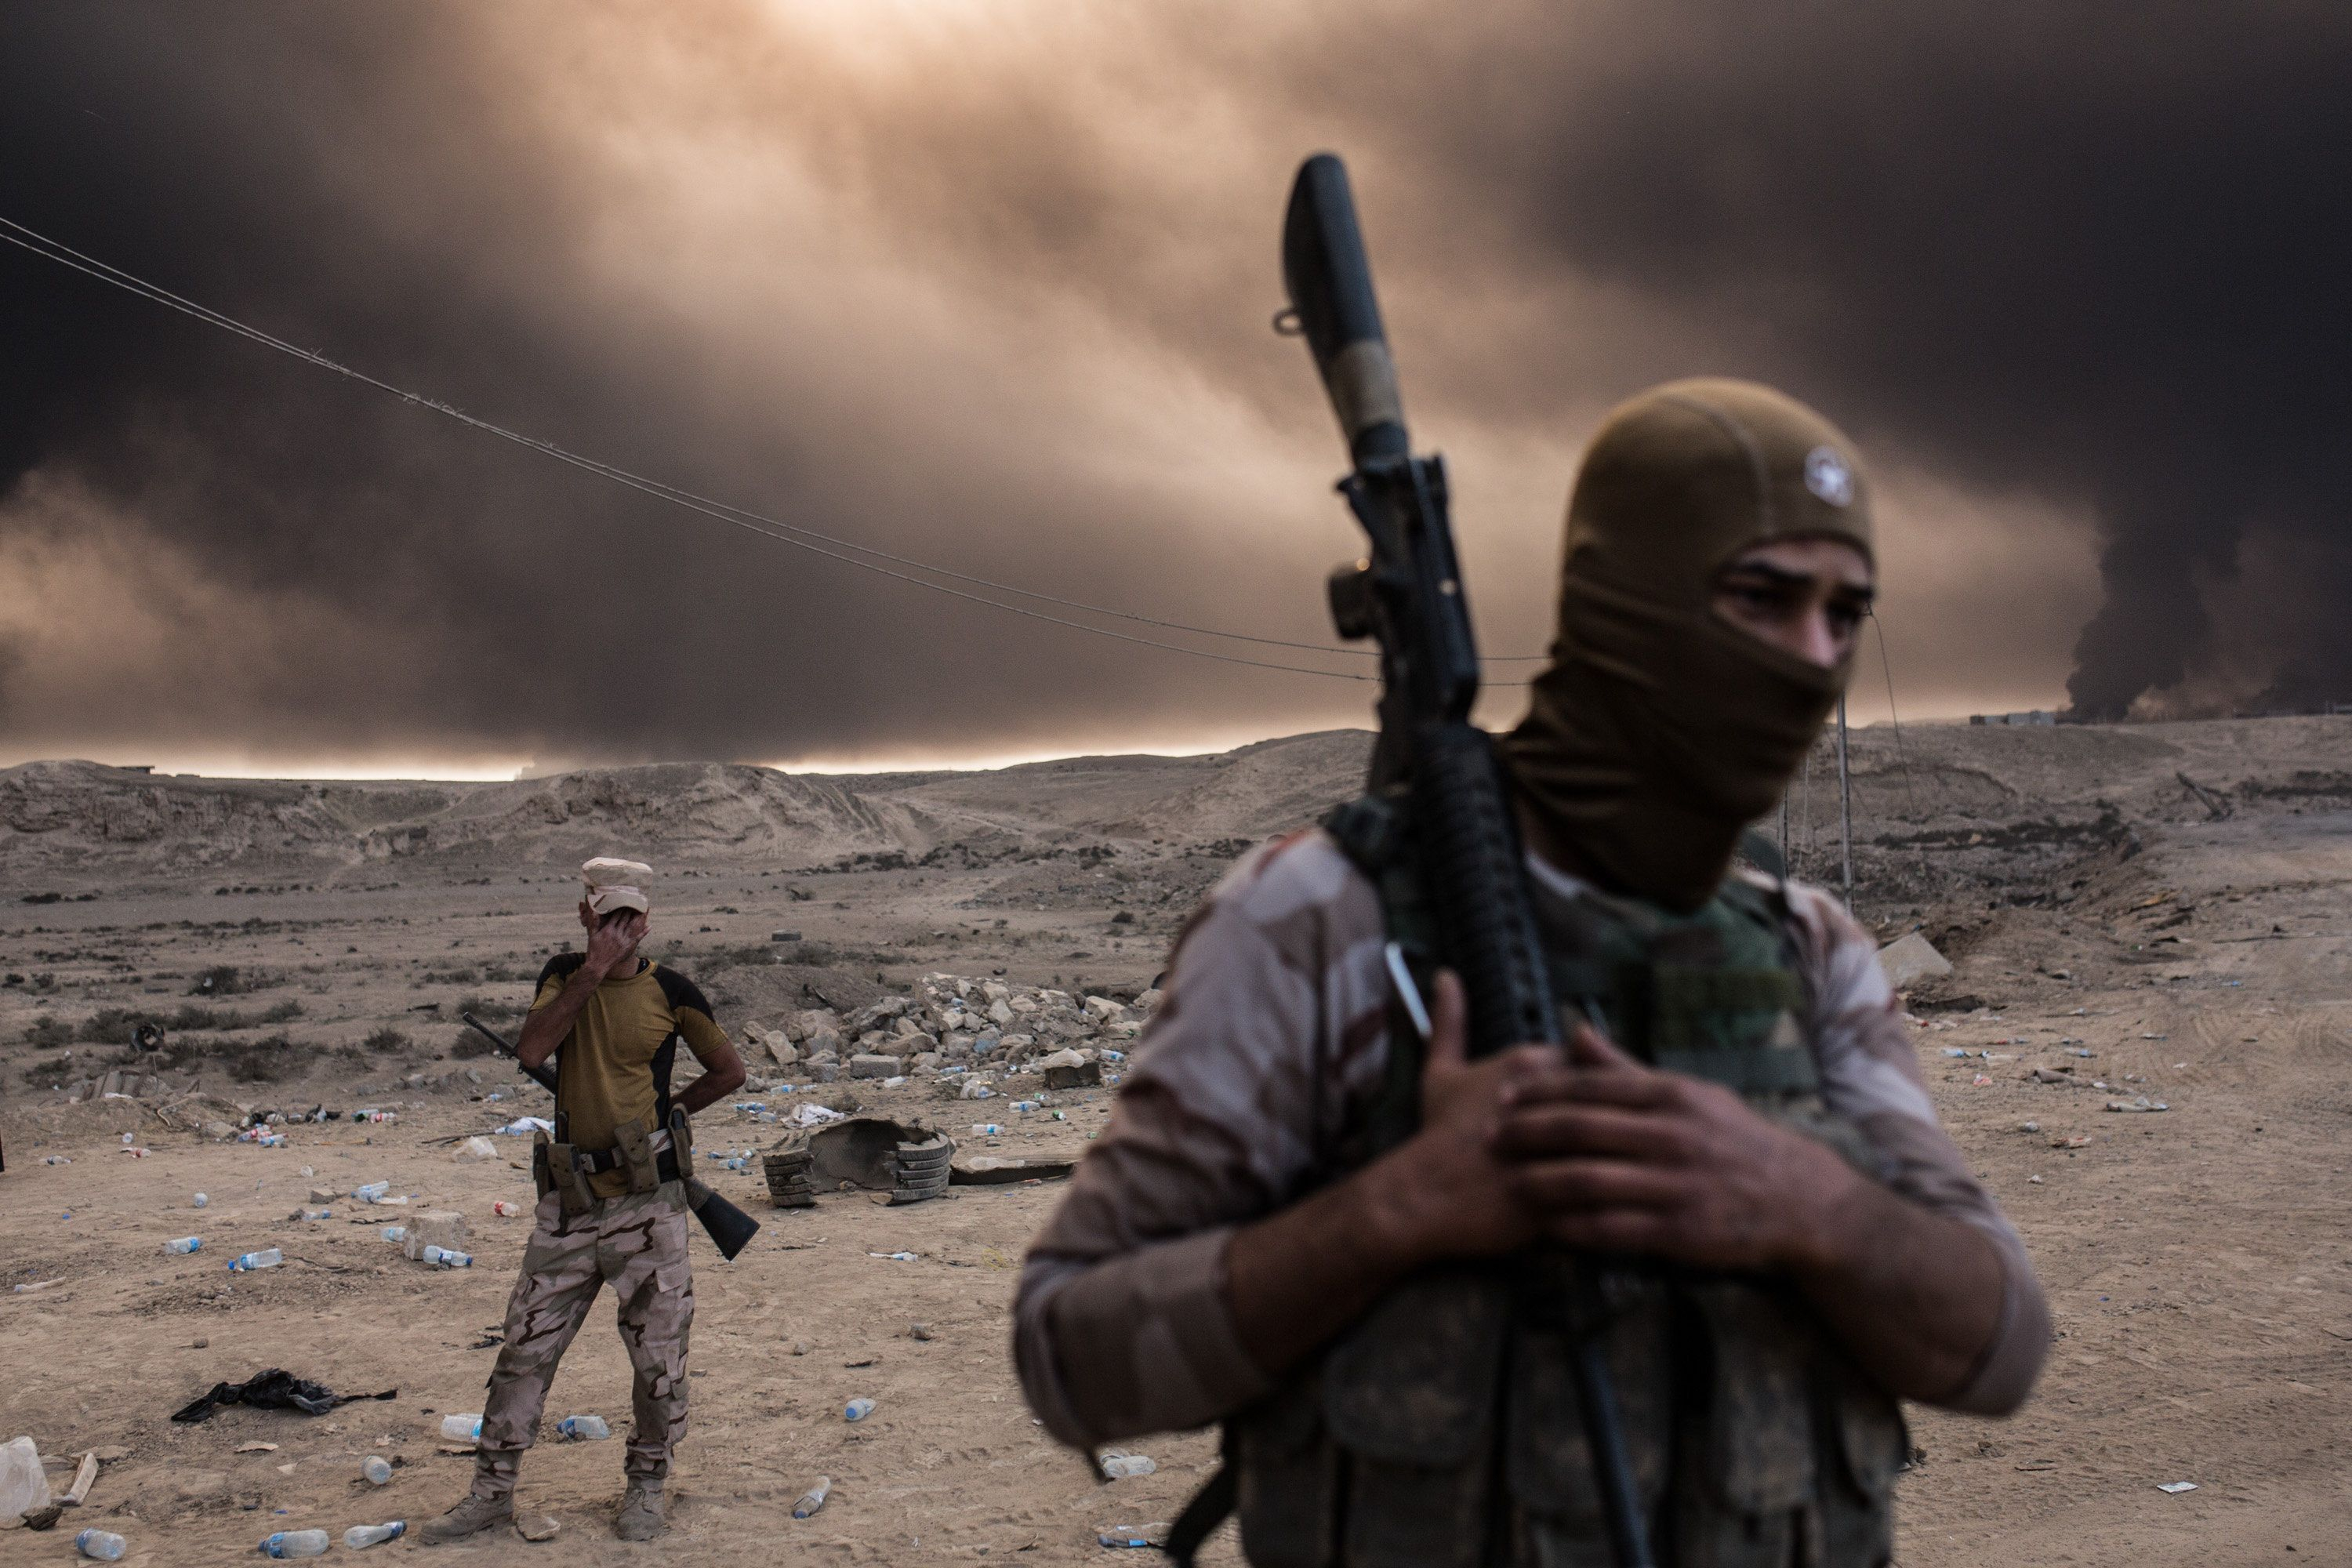 Iraqi soldiers look on as smoke rises from the Qayyarah area, some 35 miles south of Mosul, Iraq, on Oct. 19, 2016.